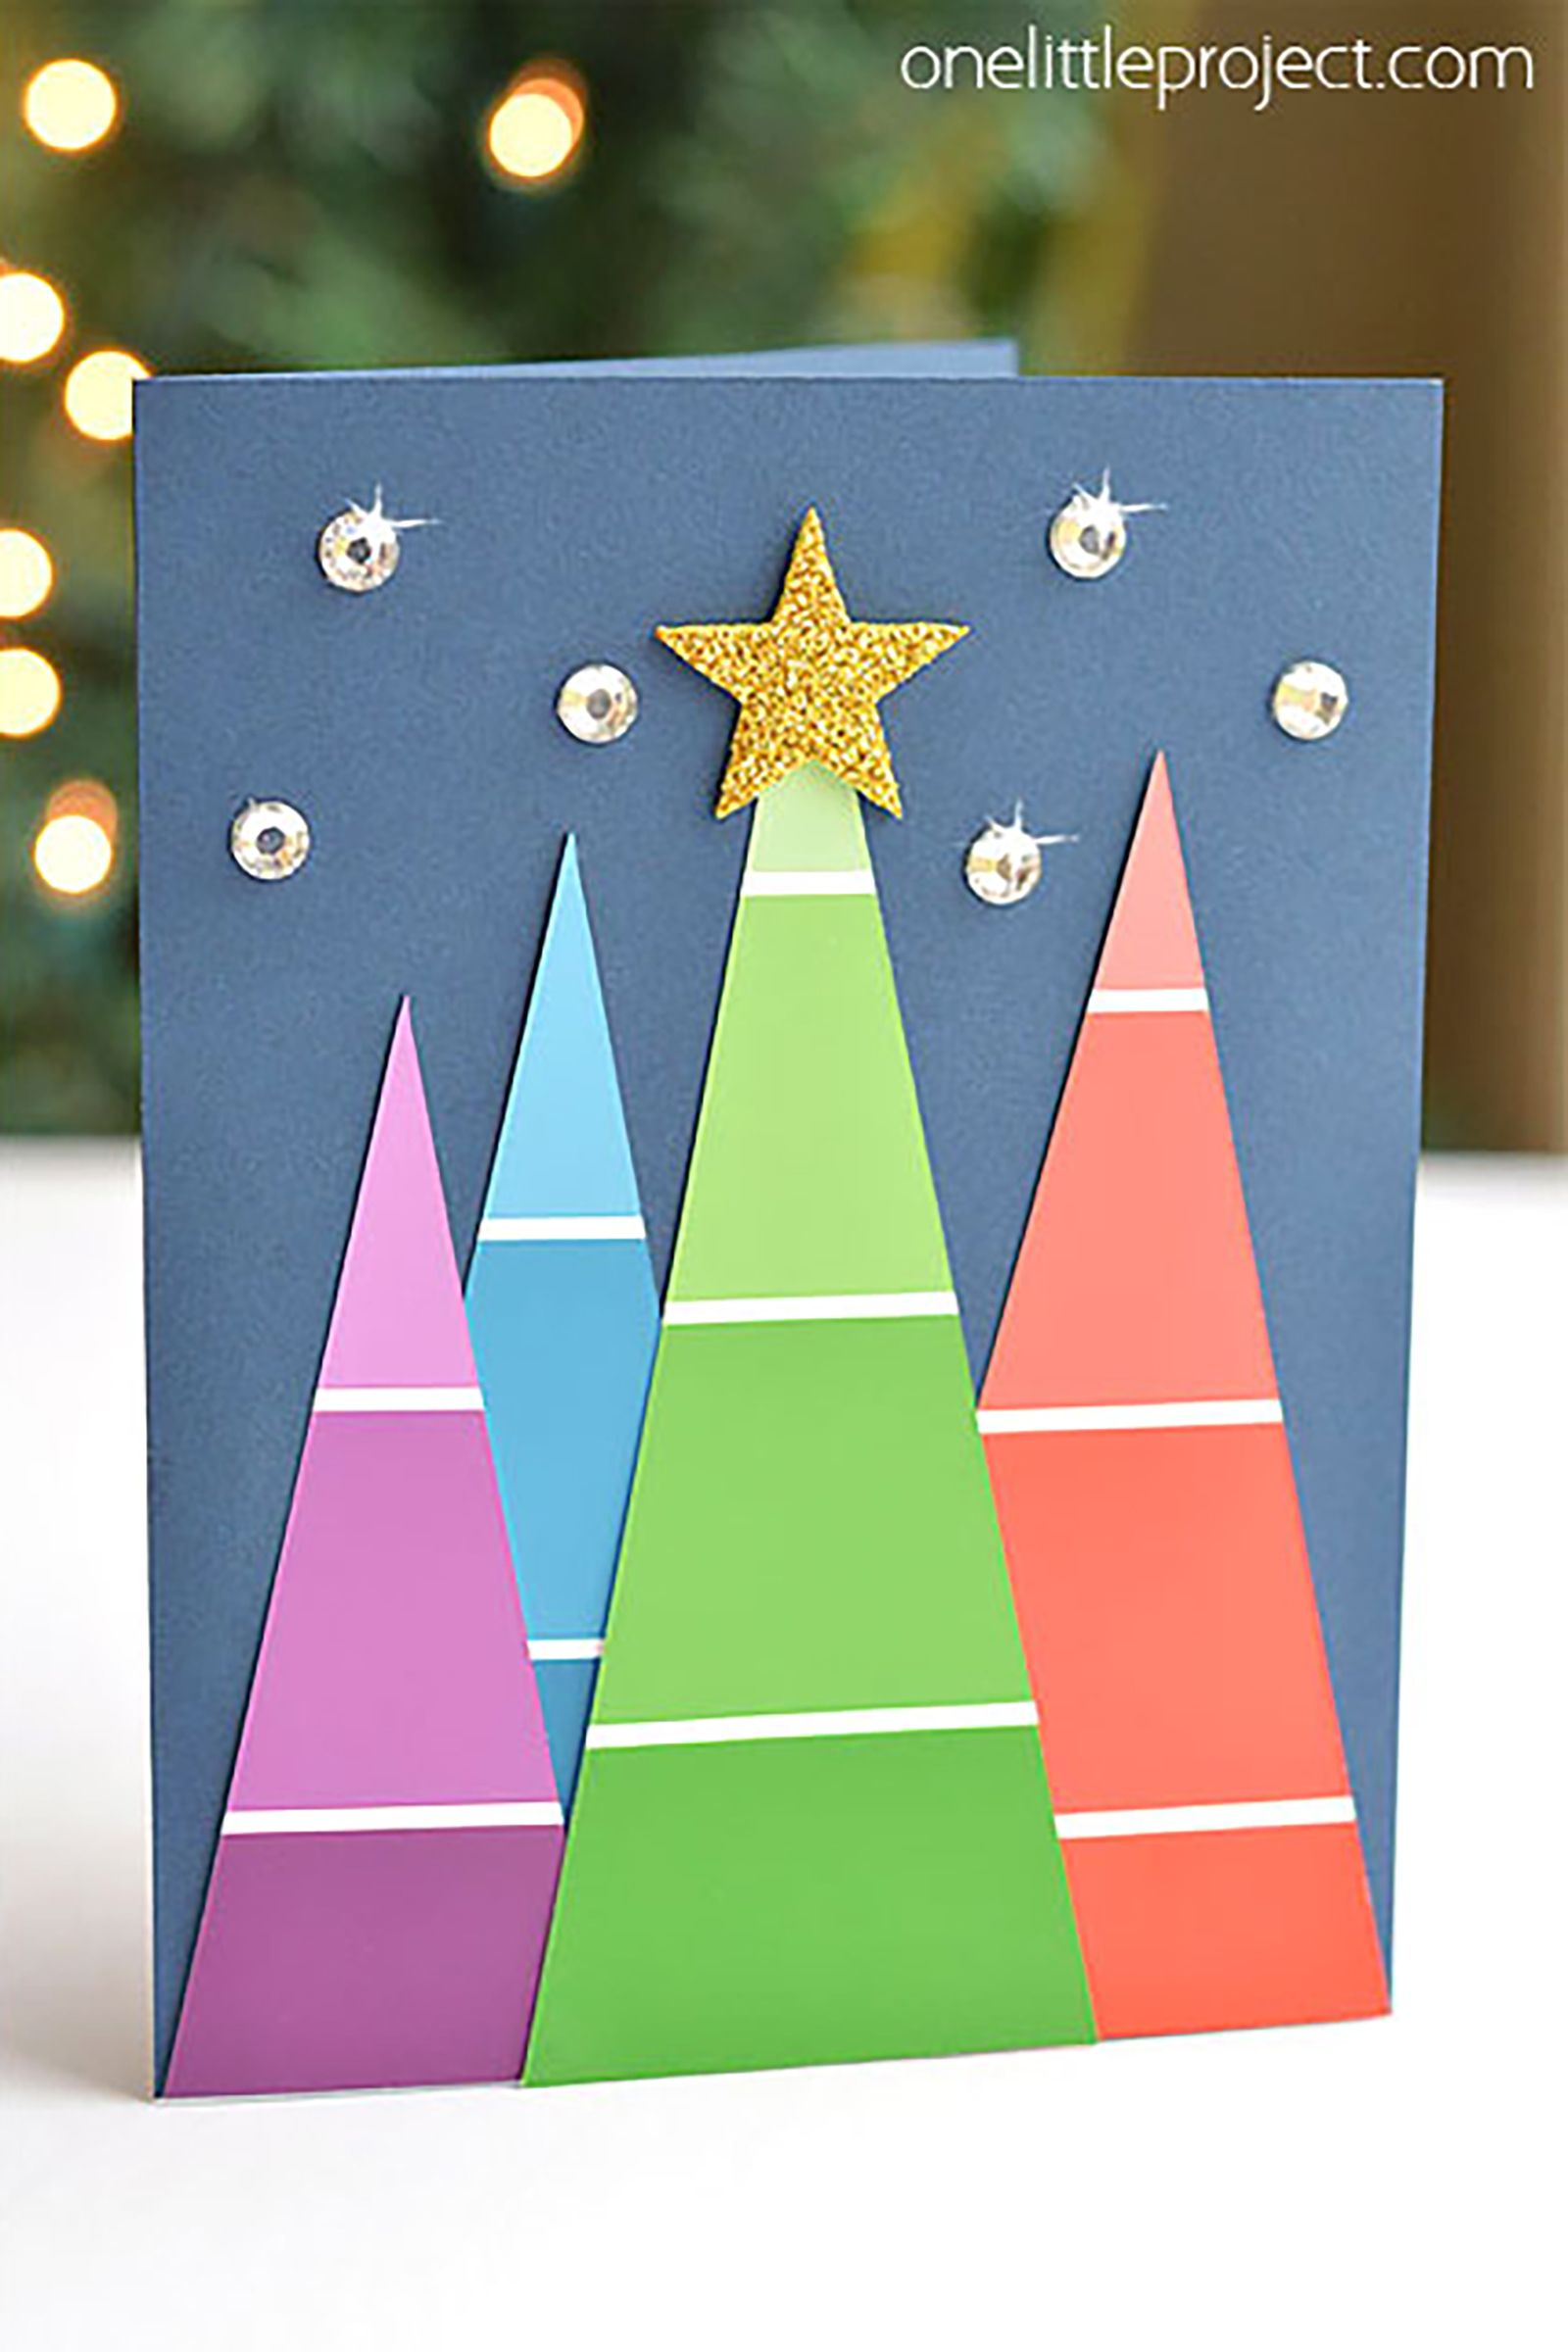 20 DIY Christmas Card Ideas - Easy Homemade Christmas Cards We're ...